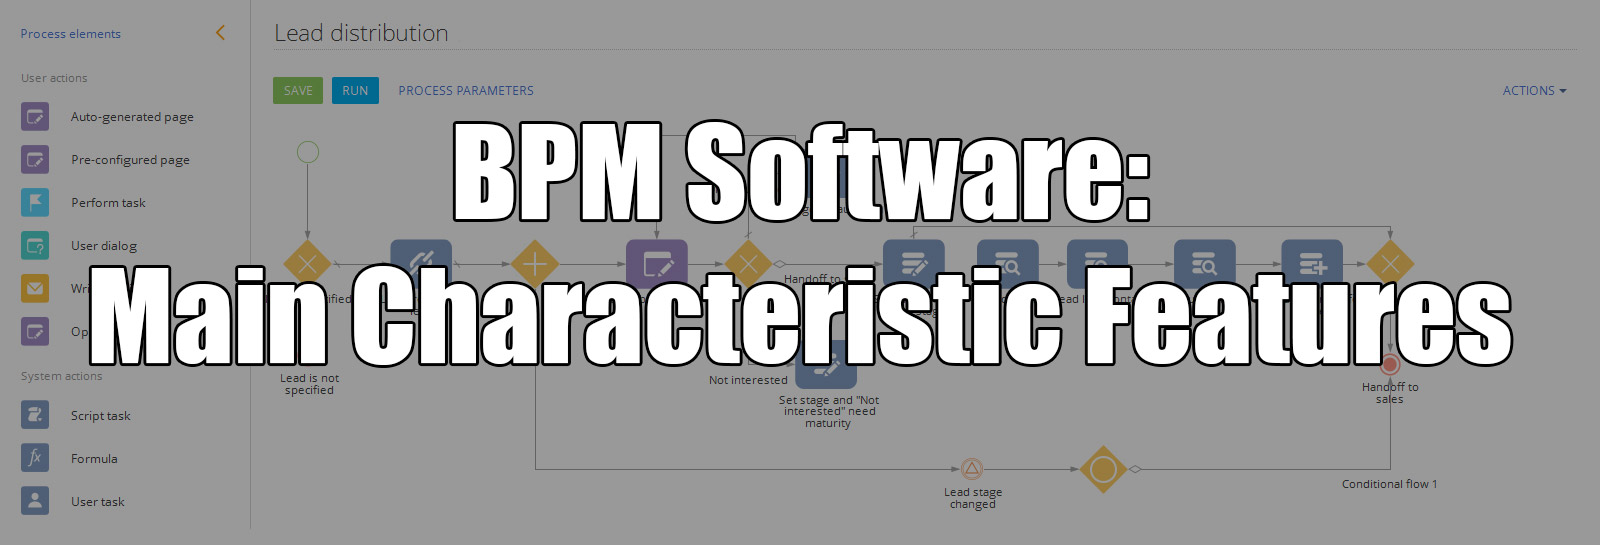 BPM Software: Main Characteristic Features